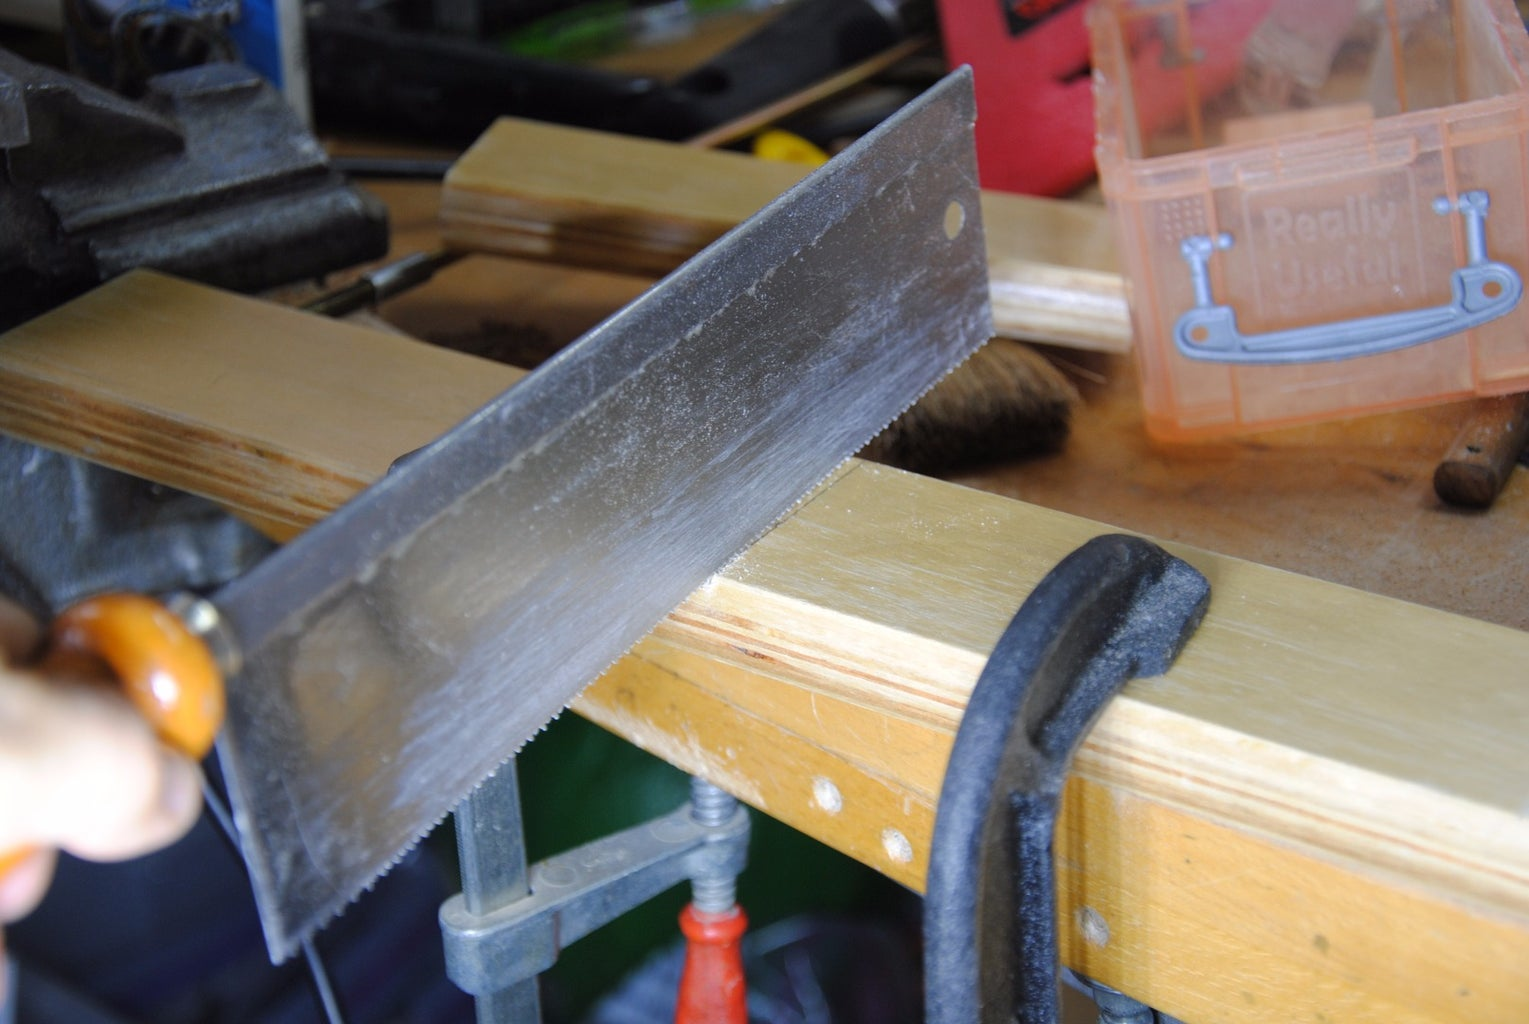 Marking & Cutting the Wood to Size